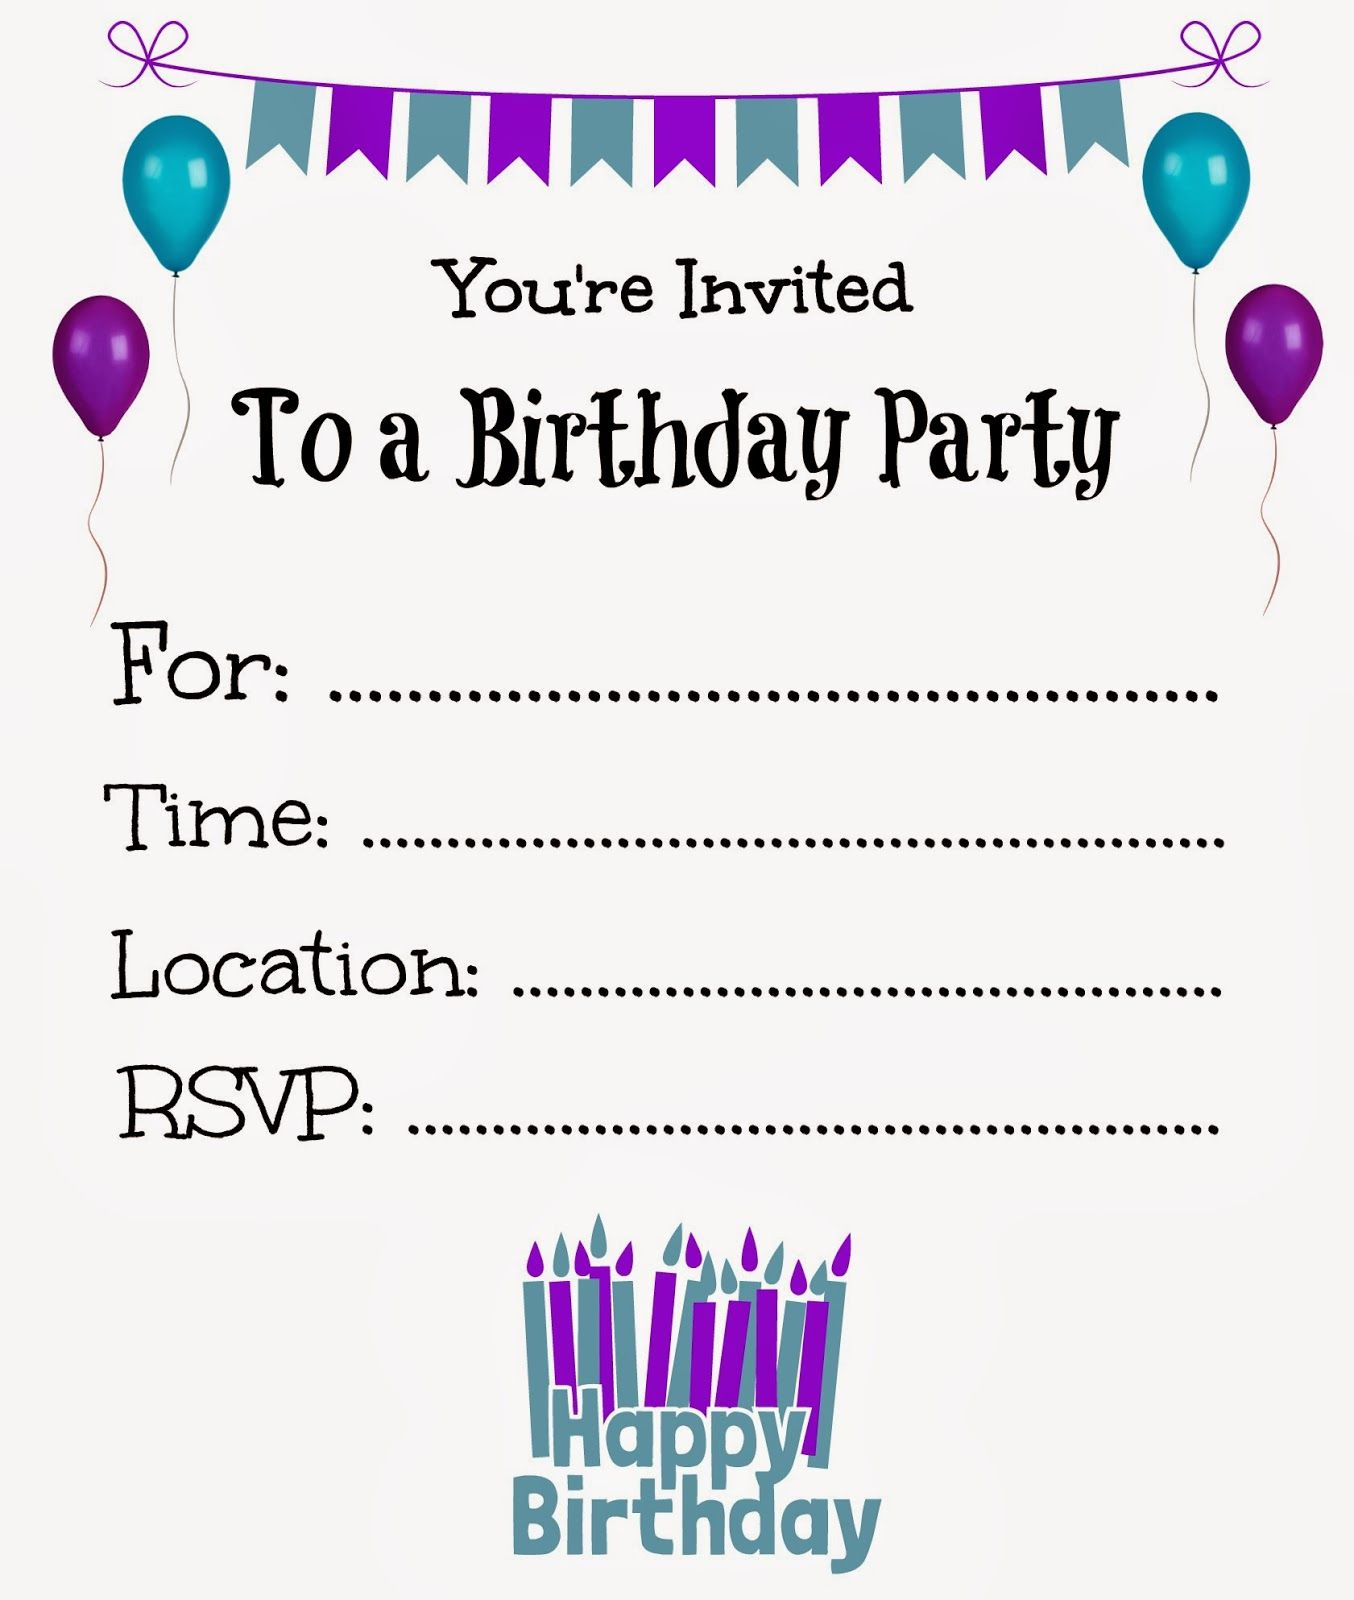 Free Printable Birthday Invitations For Kids #freeprintables - Free Printable Birthday Invitations